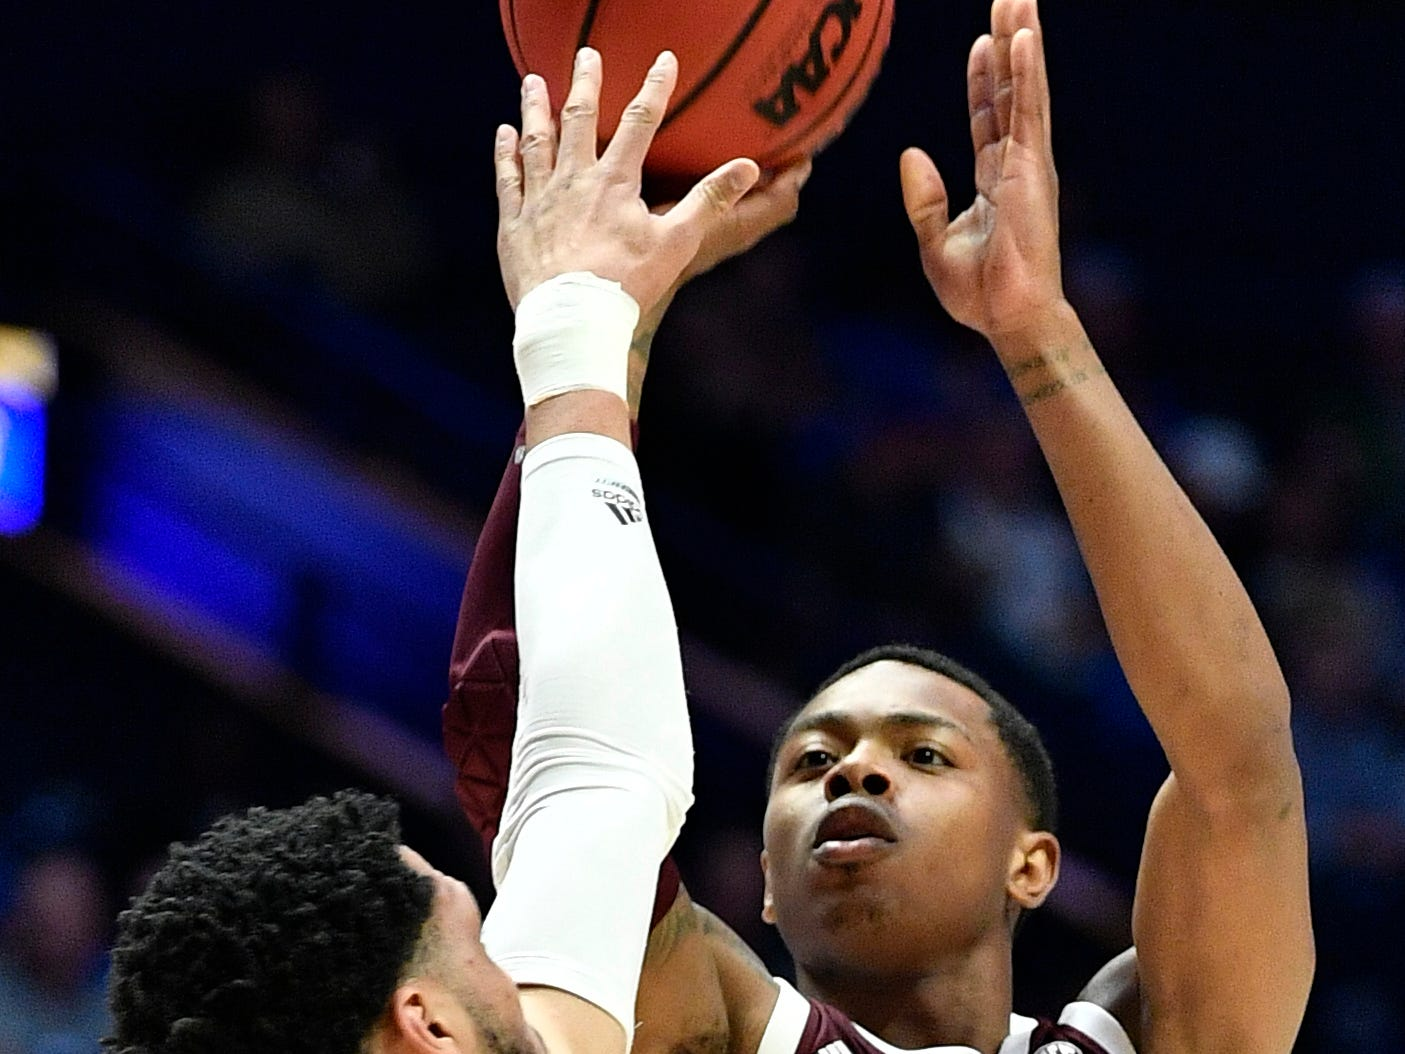 Texas A&M guard Wendell Mitchell (11) shoots defended by Mississippi State guard Quinndary Weatherspoon (11) during the first half of the SEC Men's Basketball Tournament game at Bridgestone Arena in Nashville, Tenn., Thursday, March 14, 2019.